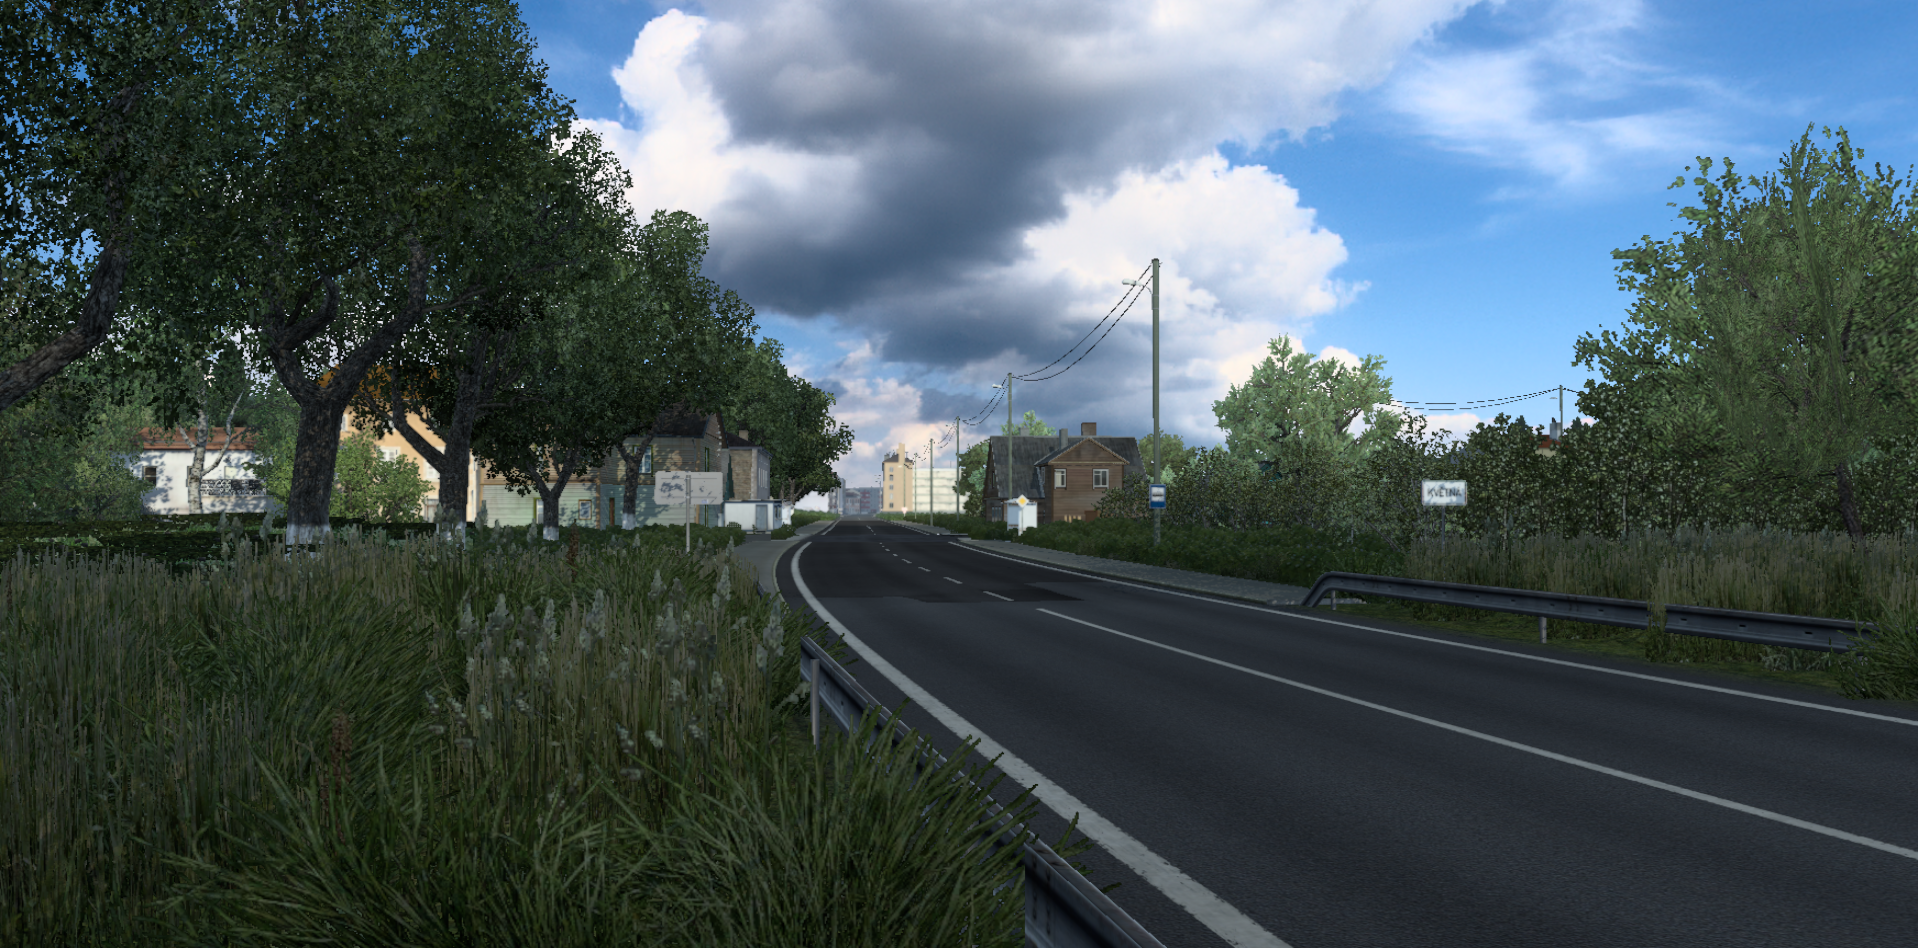 ets2_20210606_172727_00.png